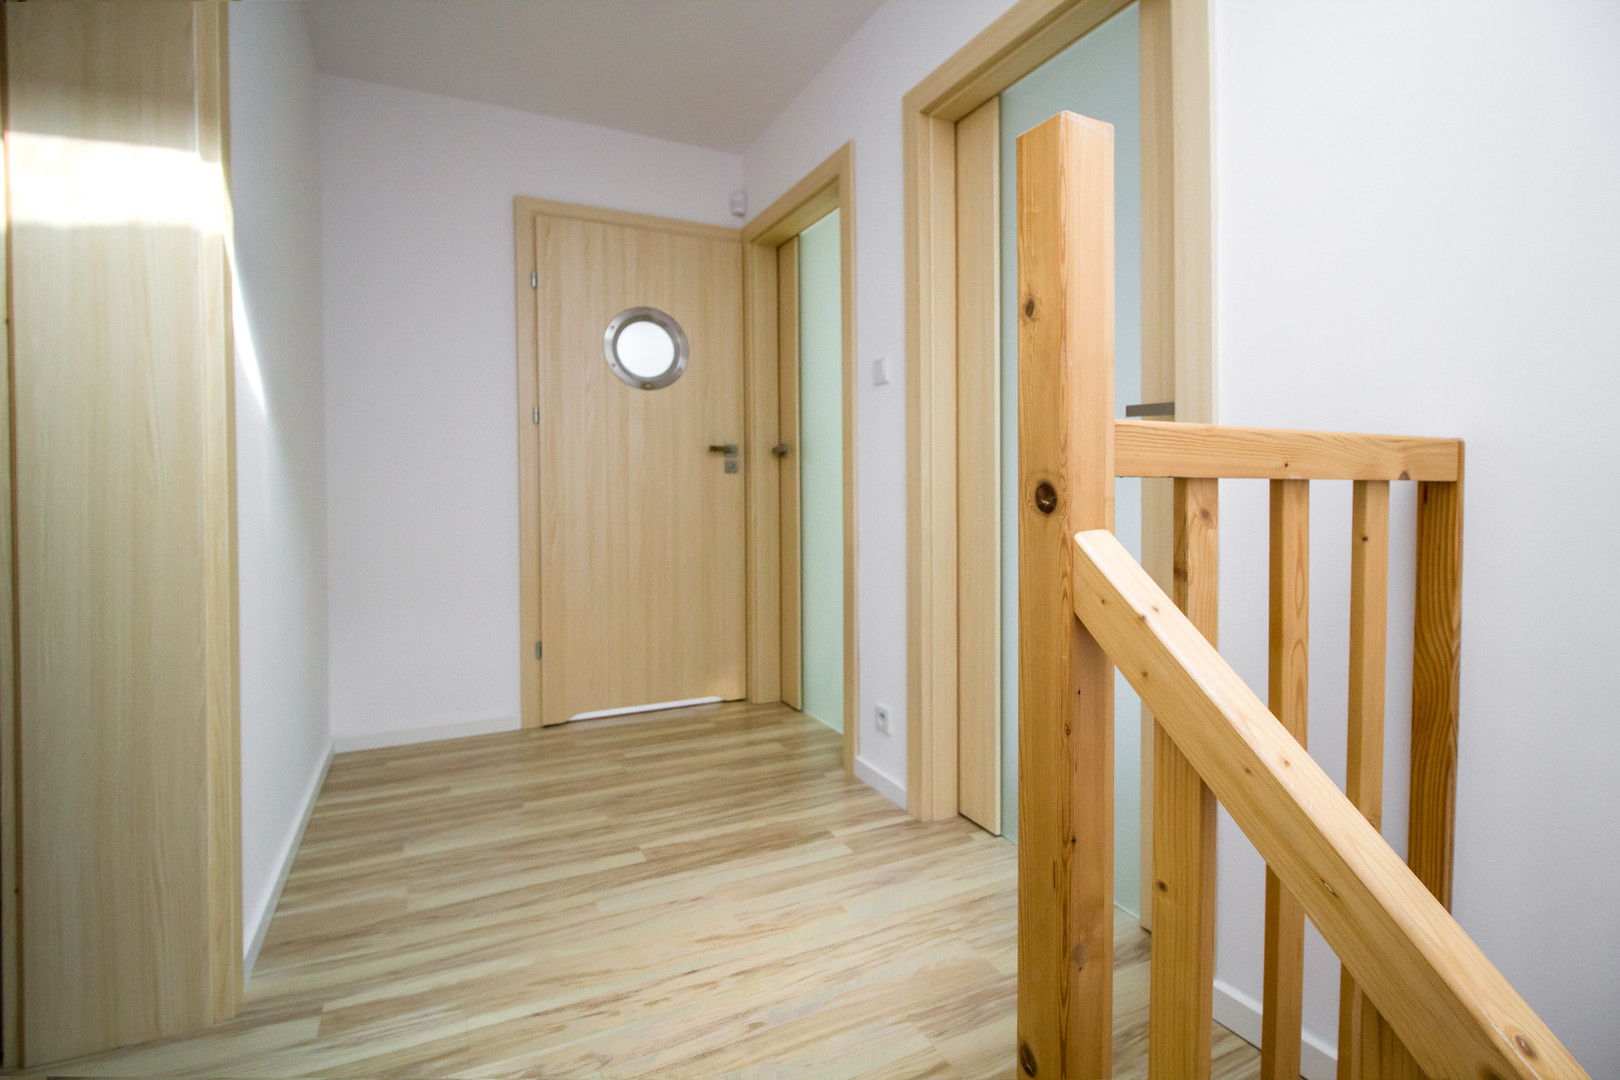 House for rent Poznan Poland (31 of 31).